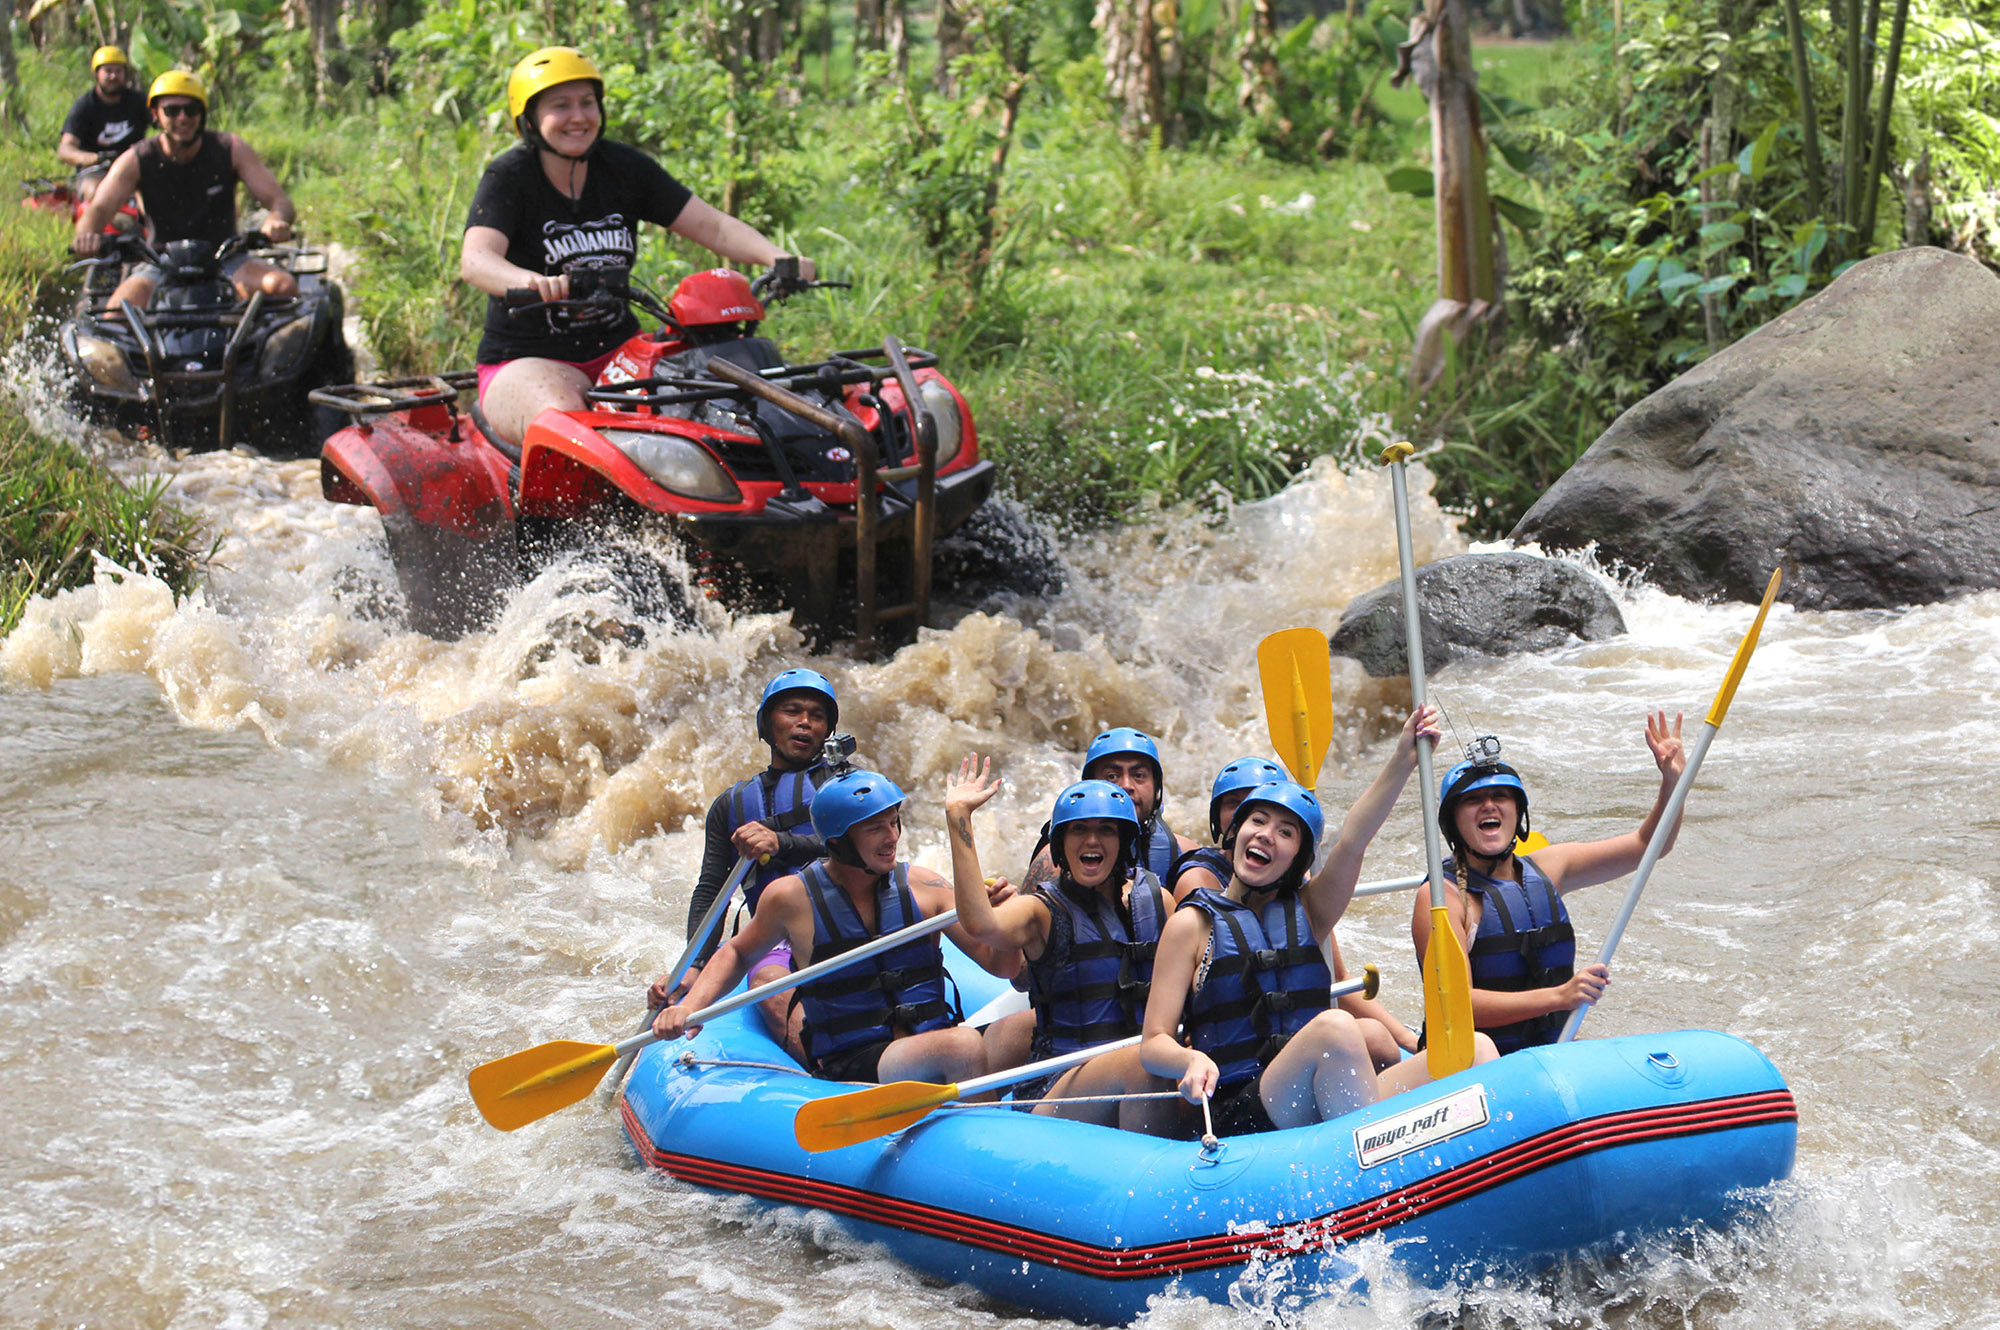 Bali Adventure Tour with Quad Bikes and Rafting 1